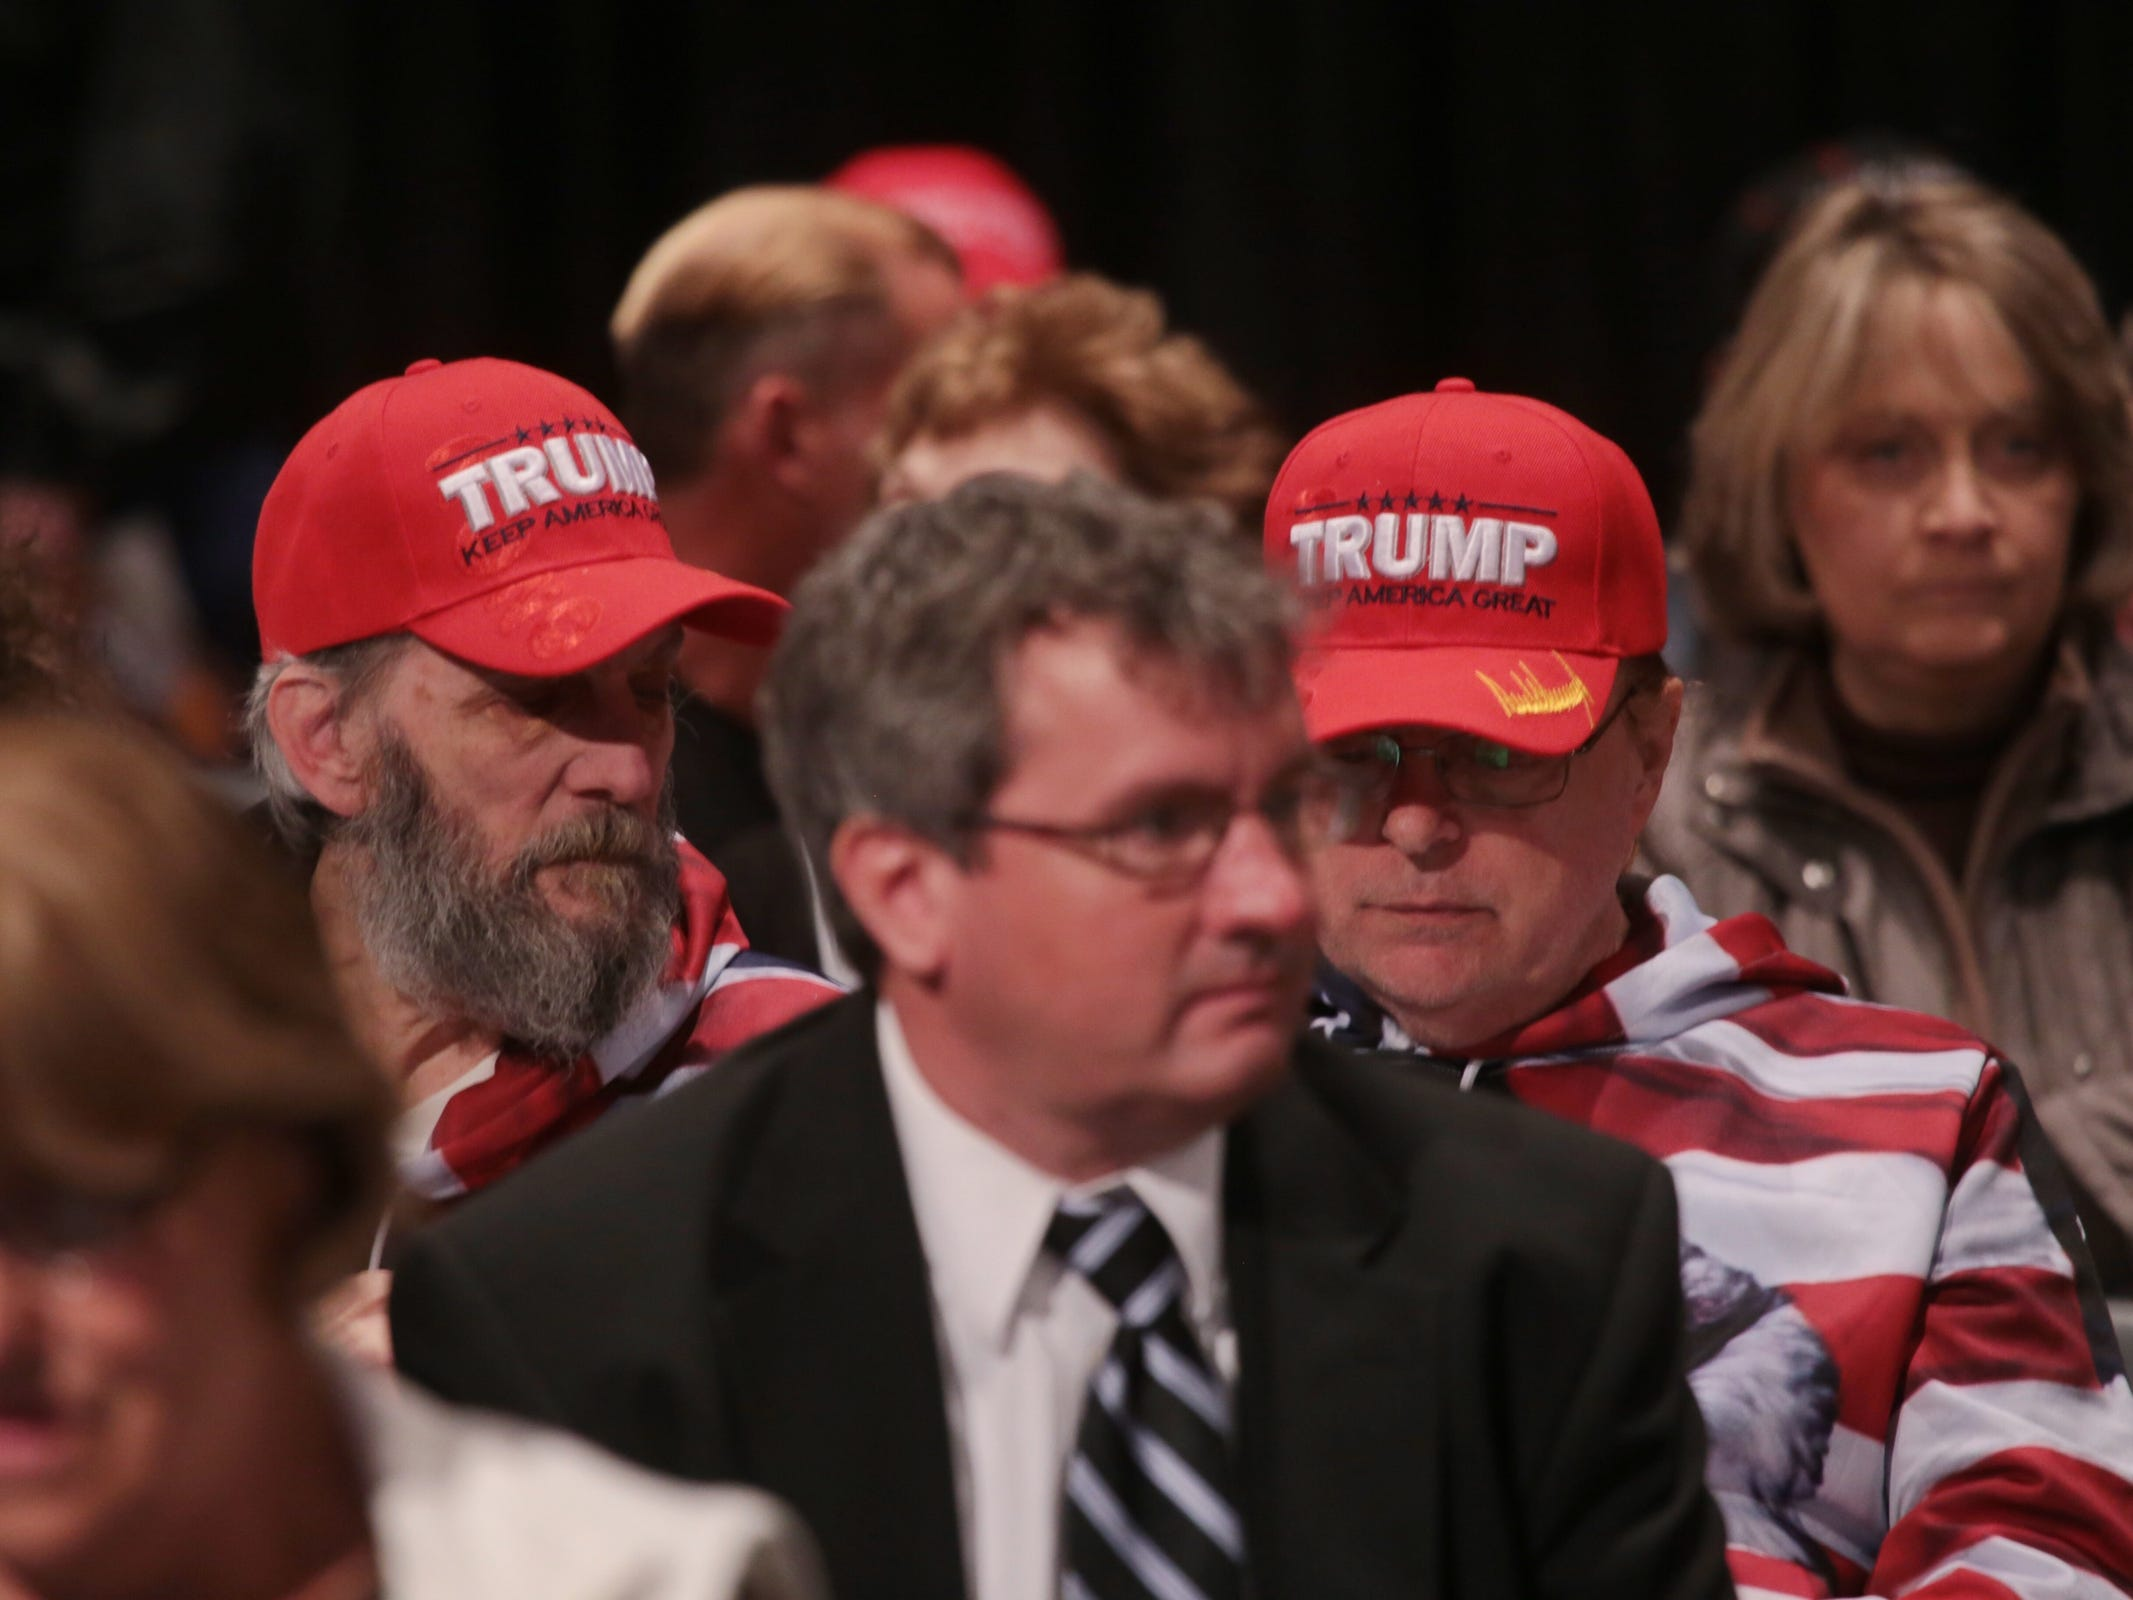 "Trump supporters wait for the start of Steve Bannon's nationwide tour stop named ""We Build the Wall"" in support Trump's wish for $7-billion expansion of border wall with Mexico, aimed at stopping illegal immigration on Thursday, March 14, 2019 at Cobo Center in downtown Detroit."